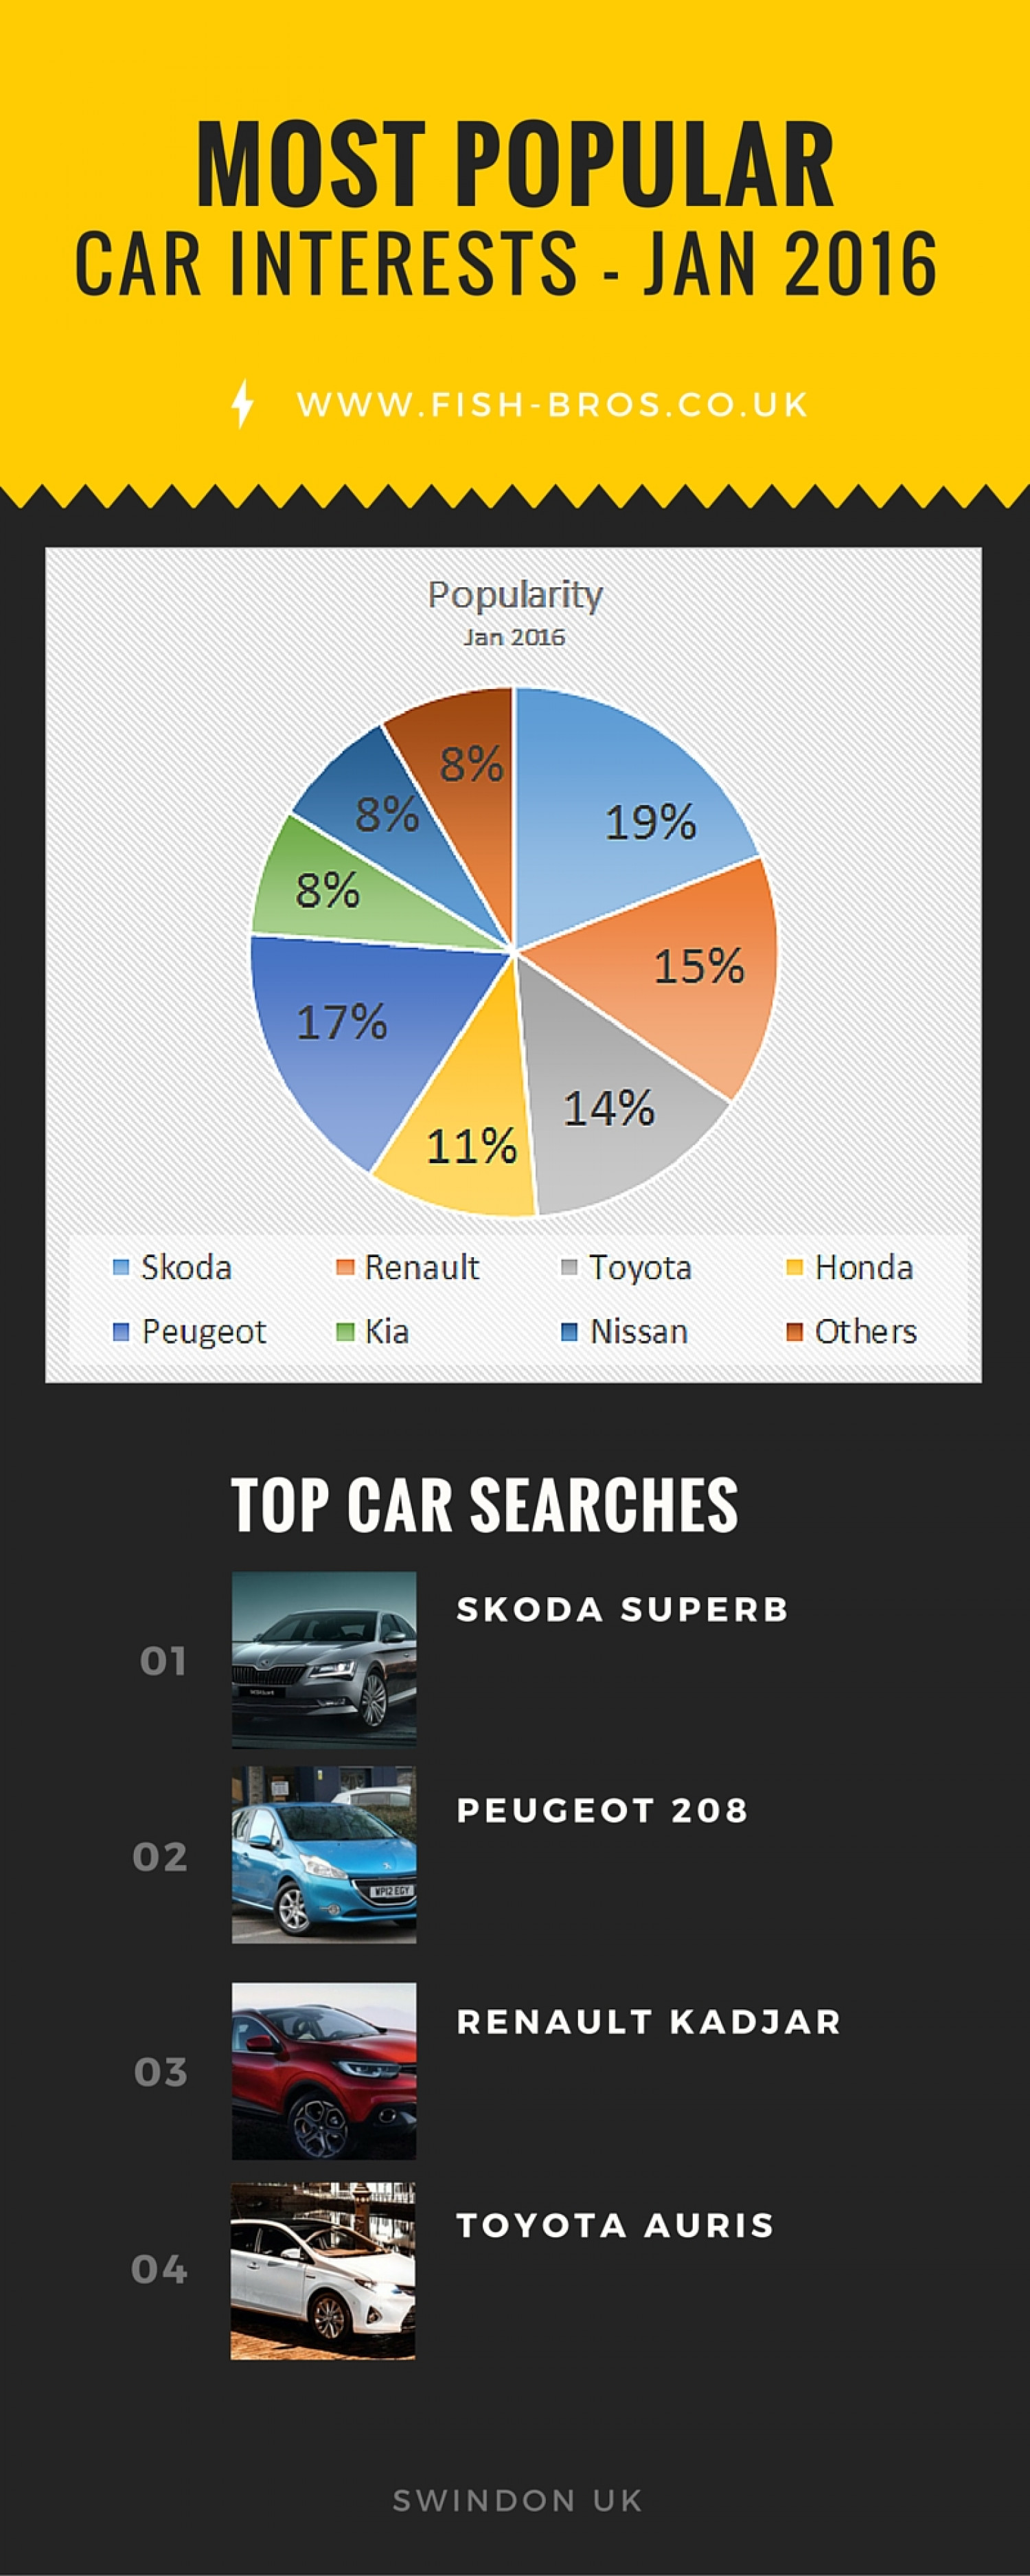 Most Popular Car Interests - Fish Brothers Group Infographic